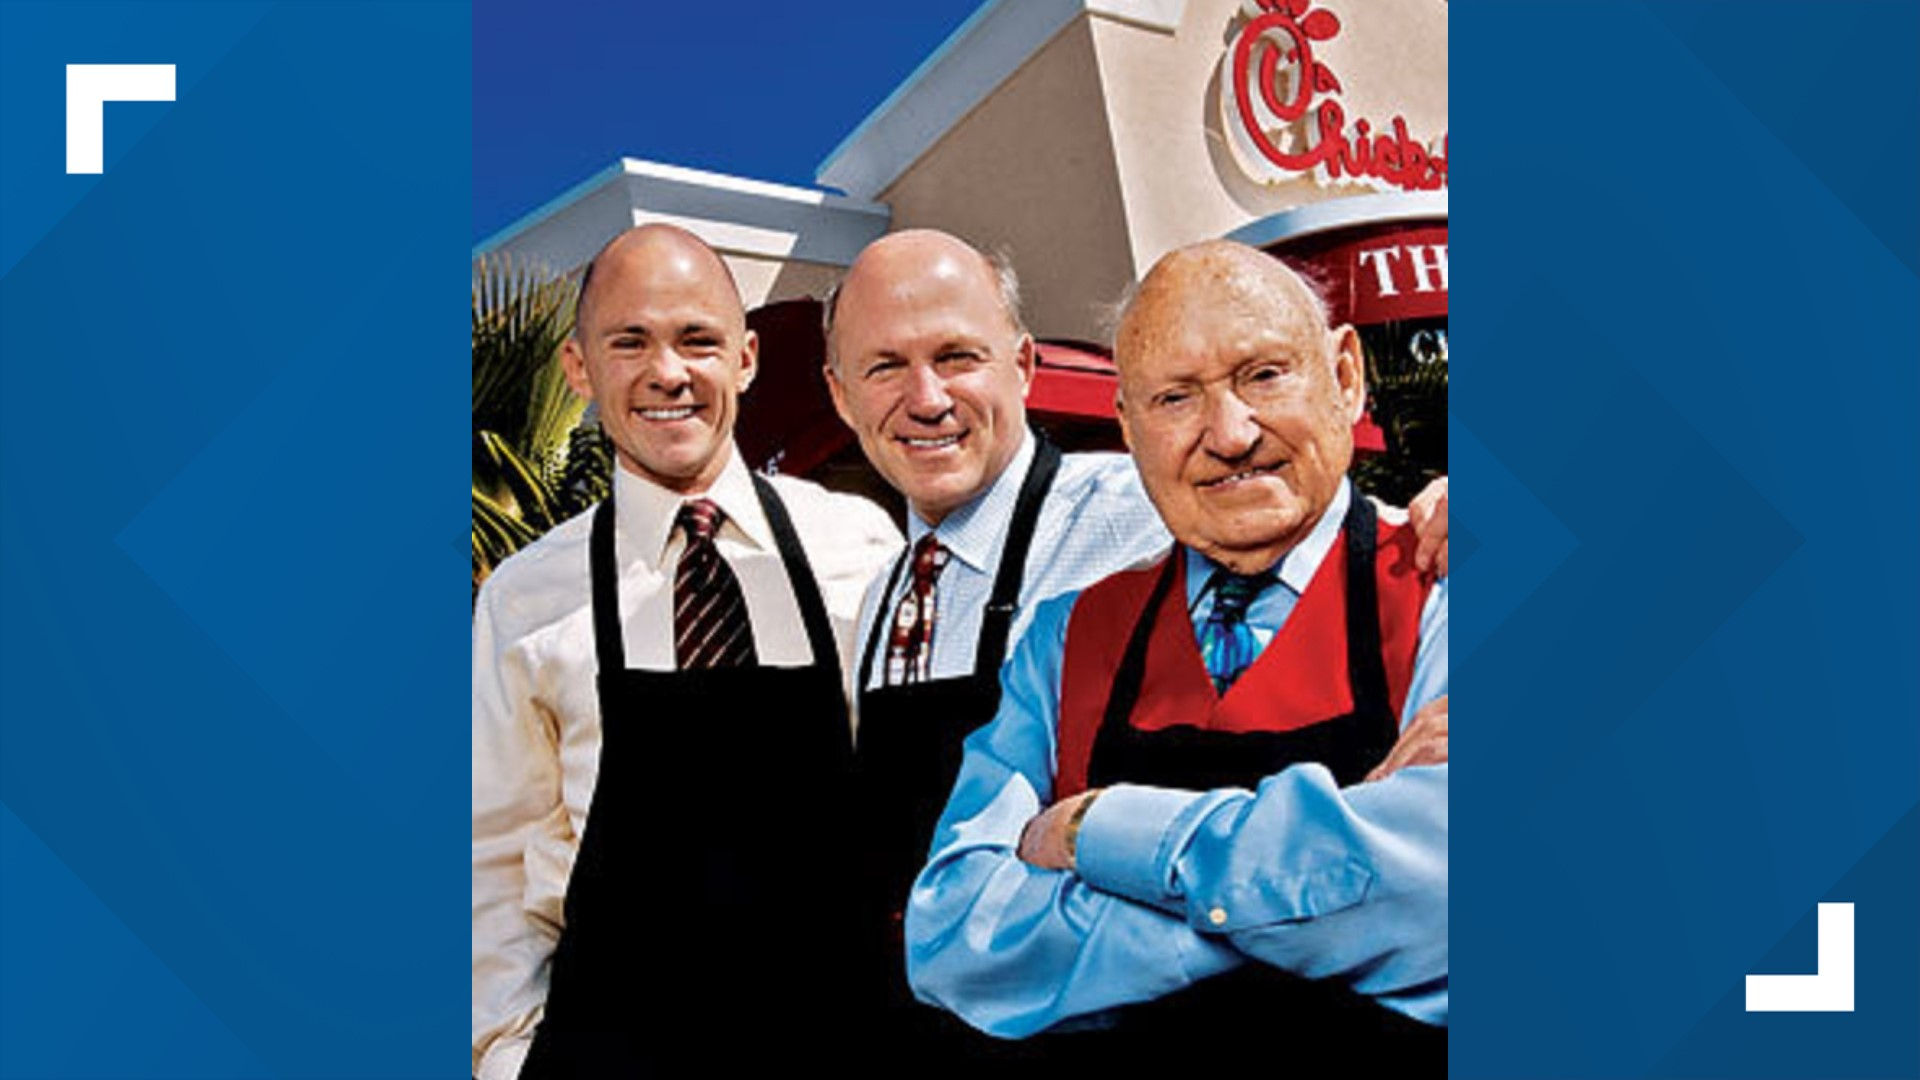 Chick-Fila's New CEO is Part of the Family